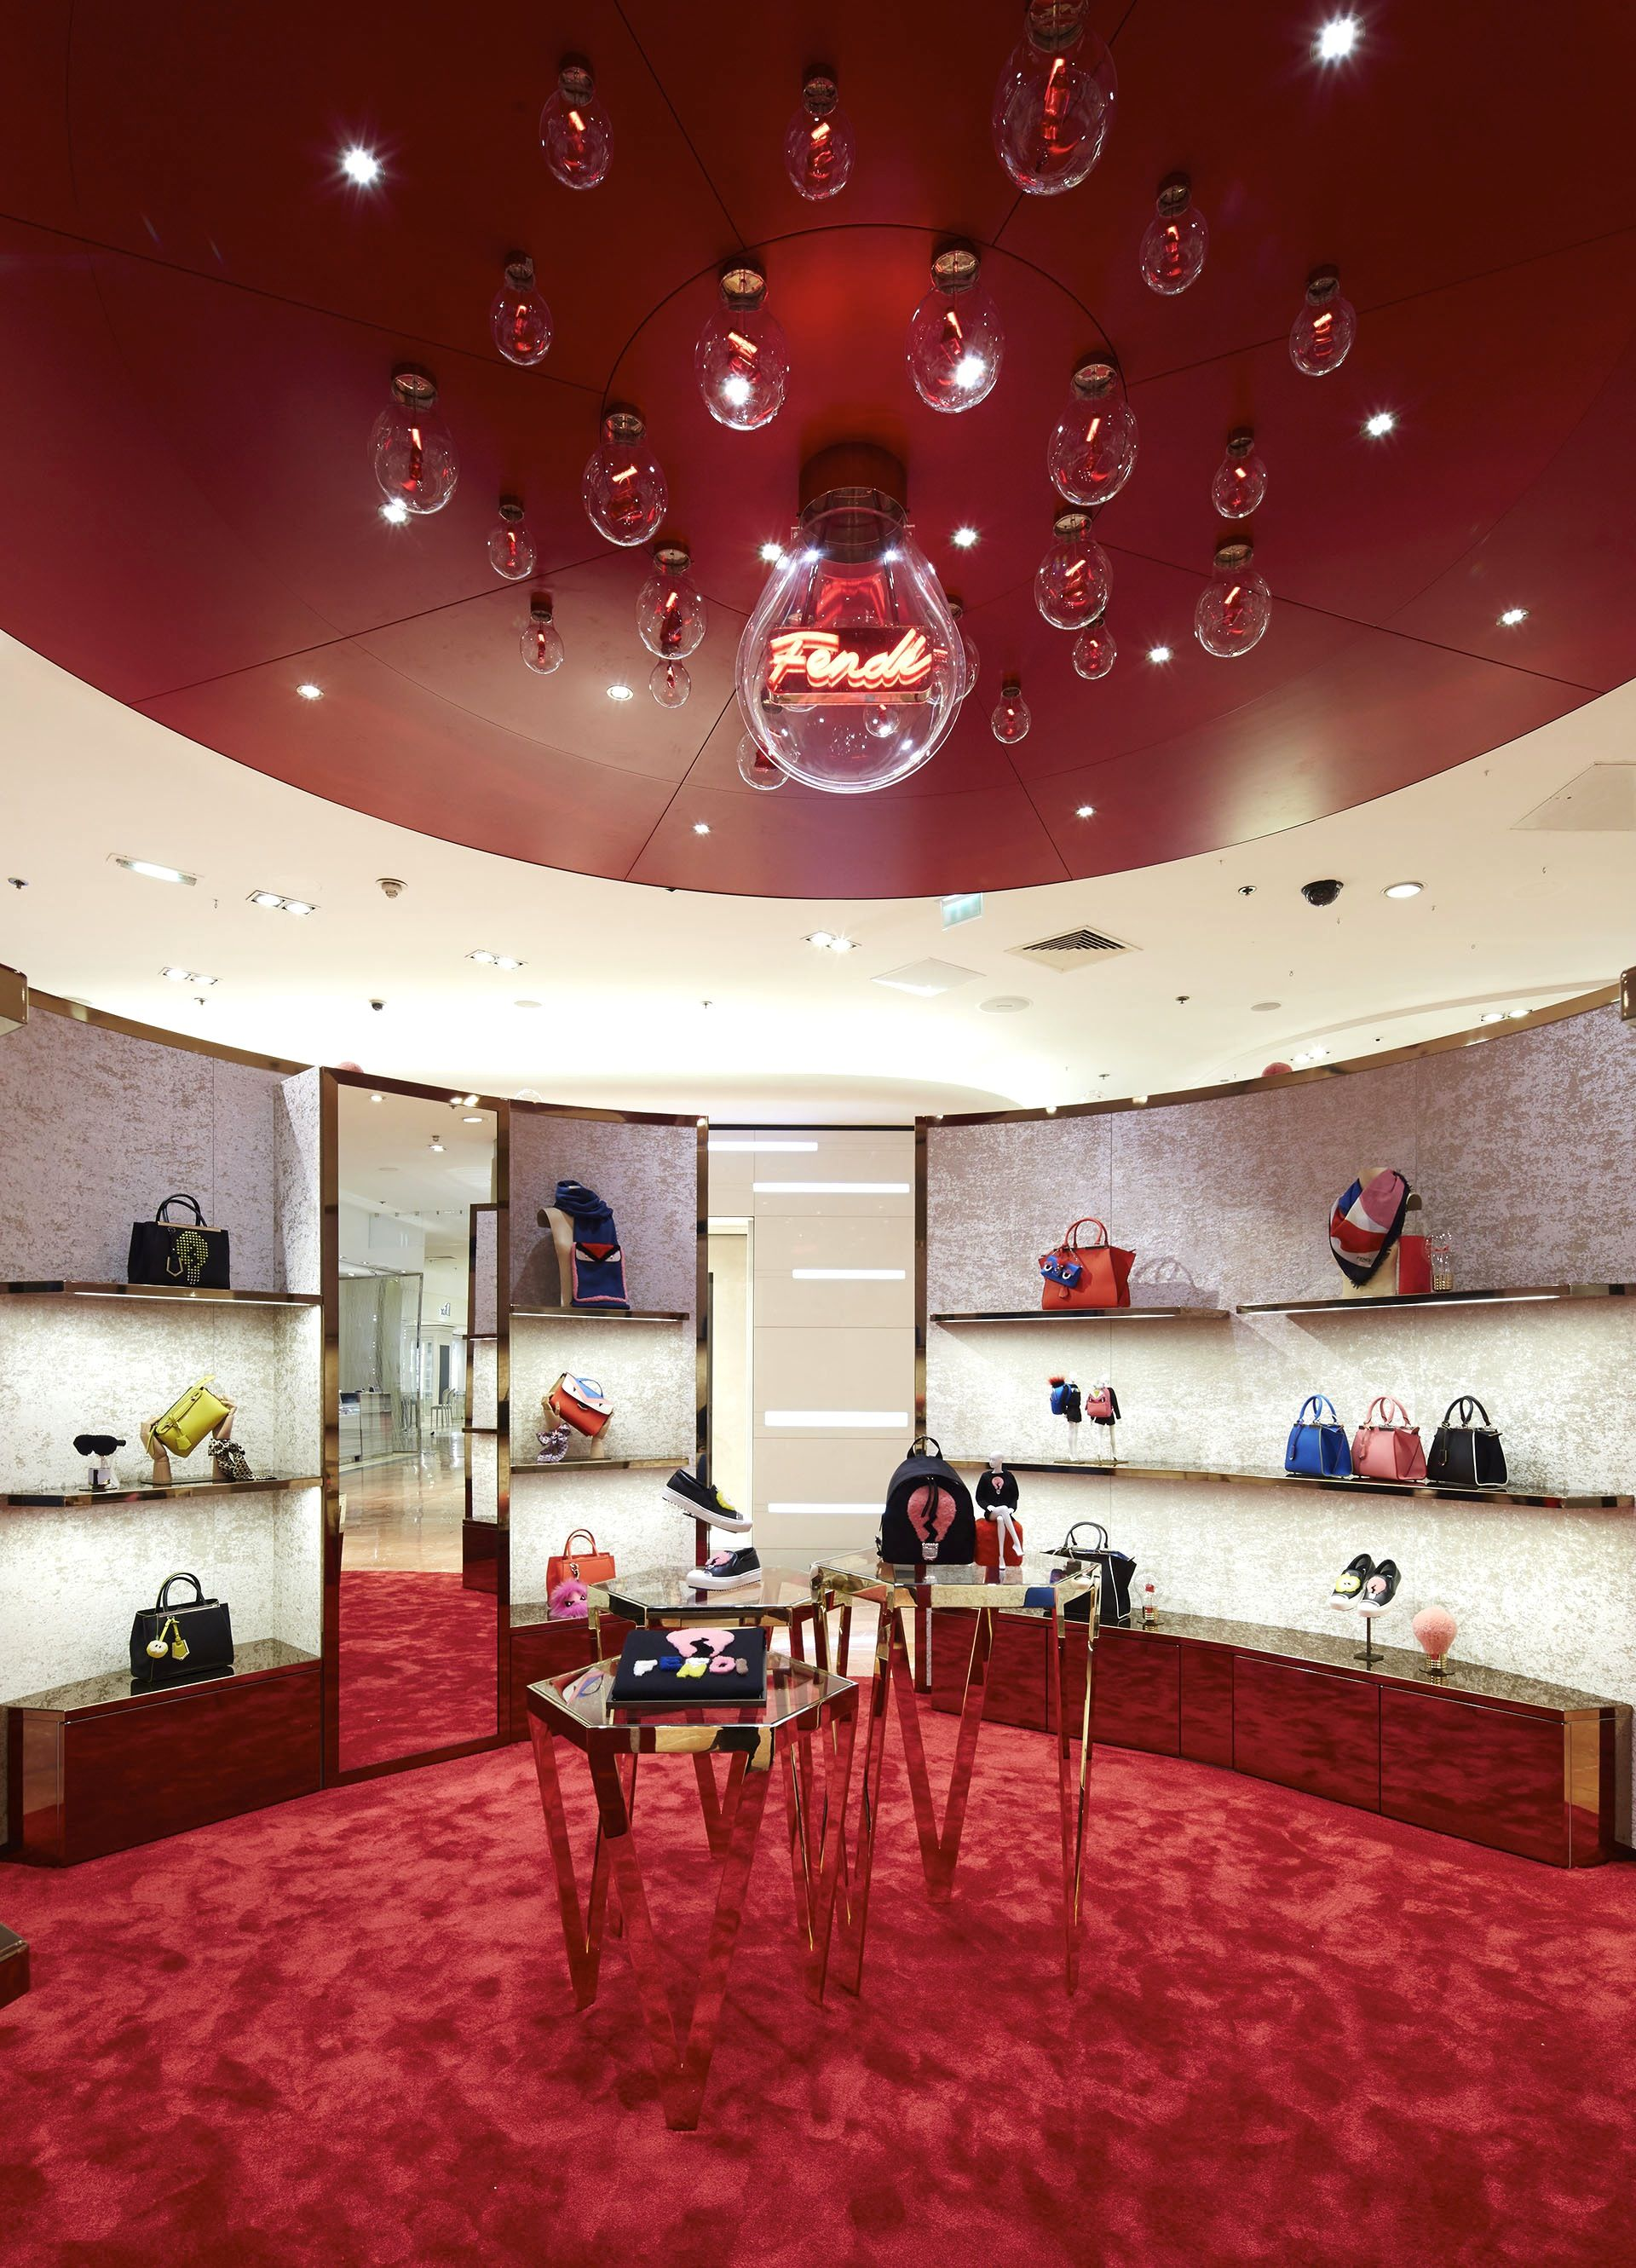 The Fendi Idea capsule collection lightens up a new pop-up store at Galeries Lafayette, Paris